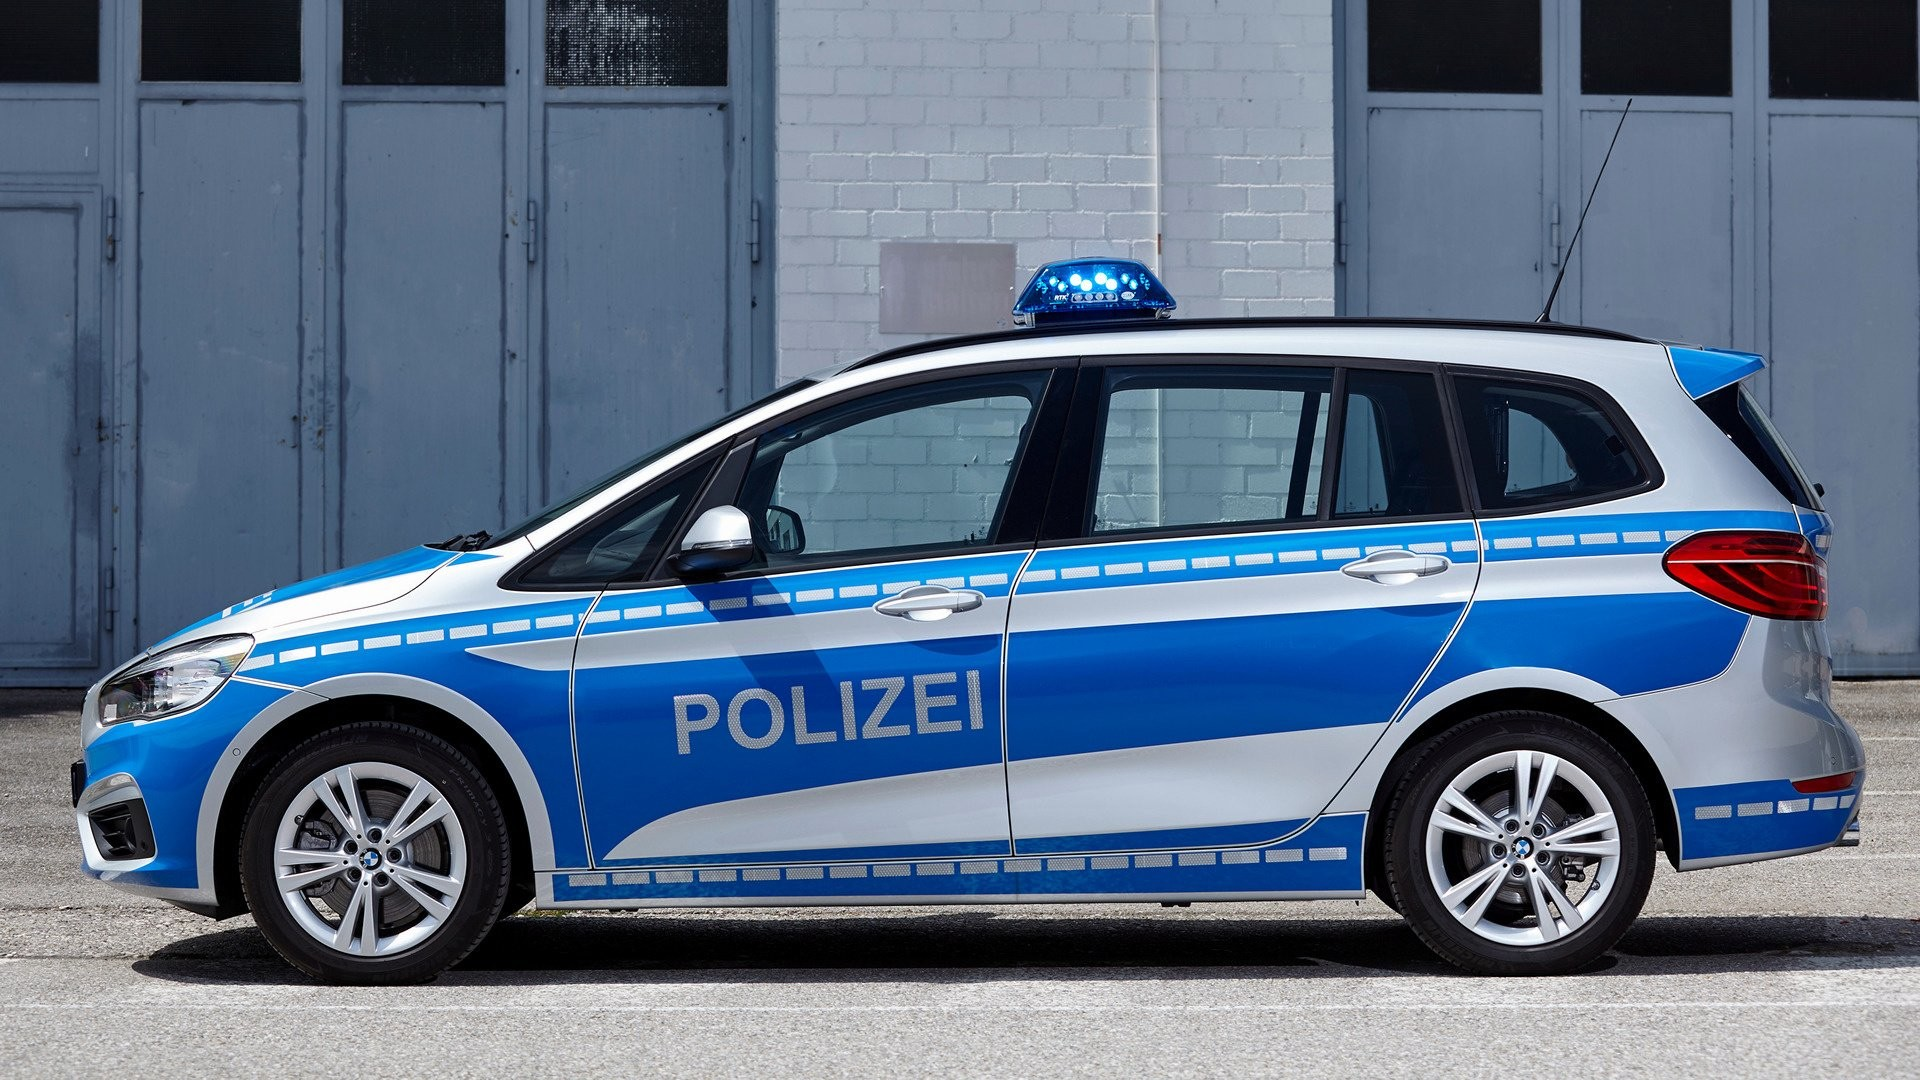 Res: 1920x1080, Fahrzeuge - BMW 2 Series Police Car Compact Car Luxury Car Blue Car  Wallpaper